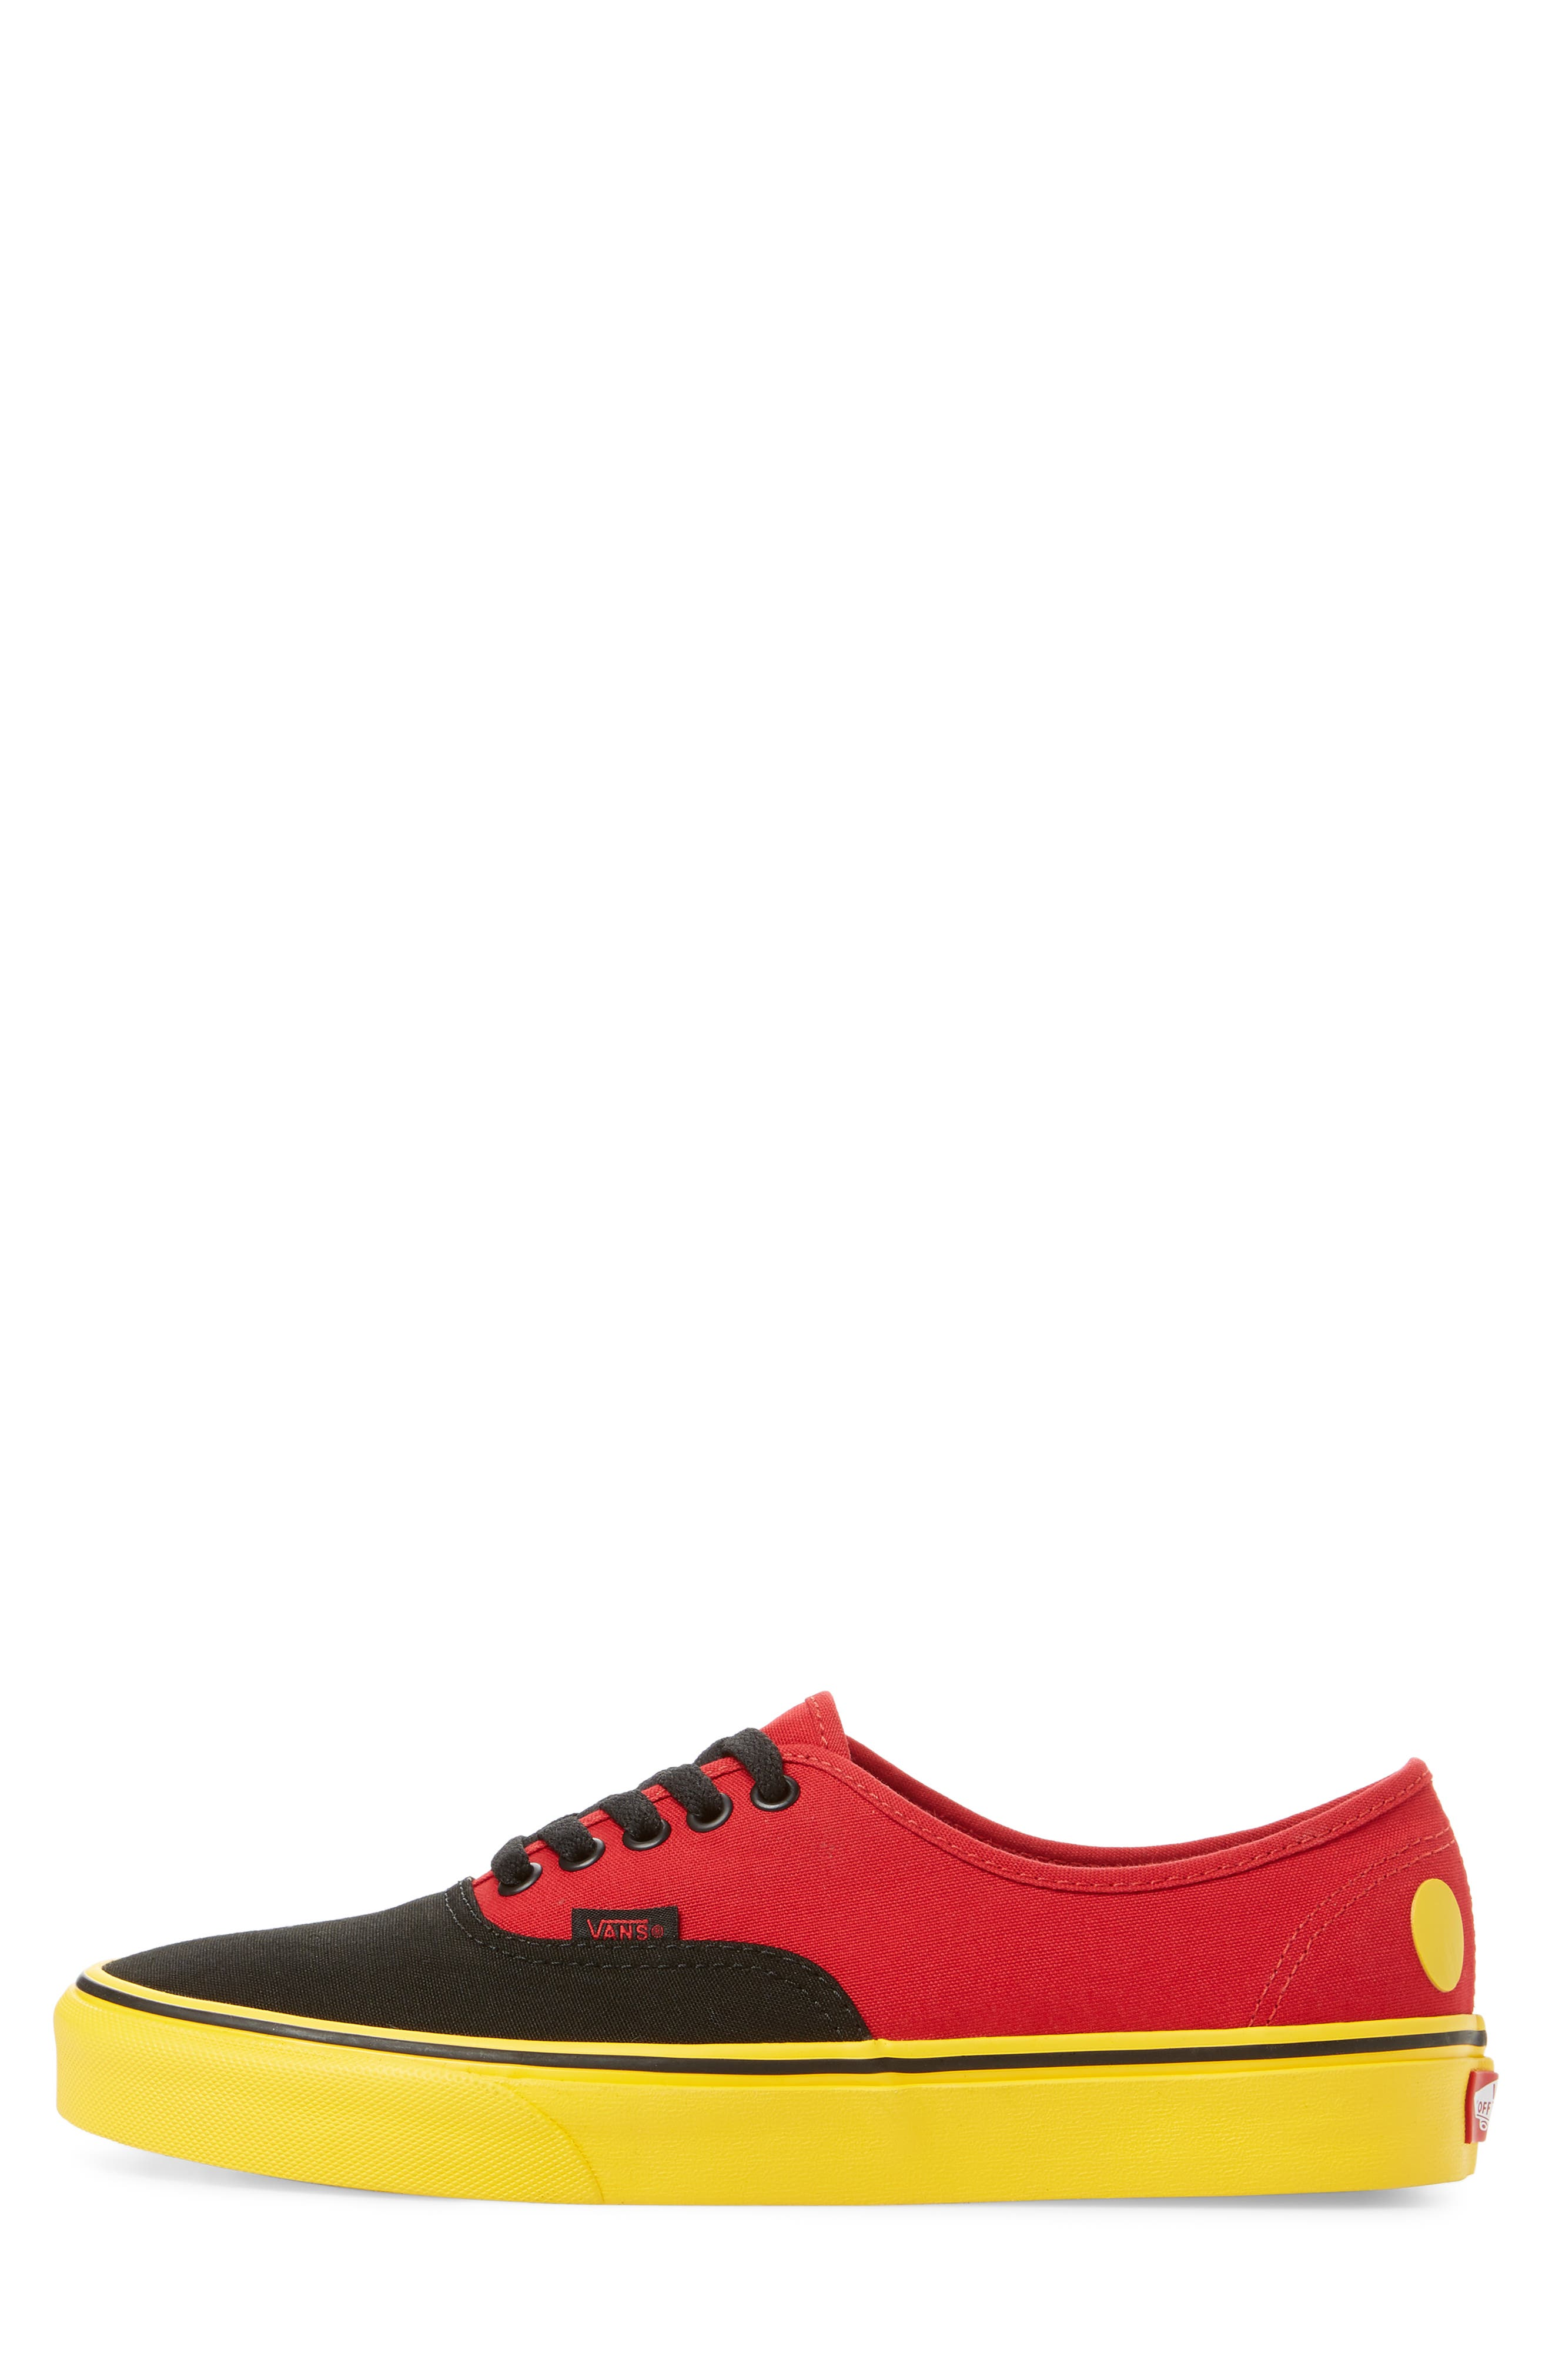 x Disney<sup>®</sup> Authentic Low Top Sneaker,                             Alternate thumbnail 3, color,                             DISNEY MICKEY/ RED/ YELLOW